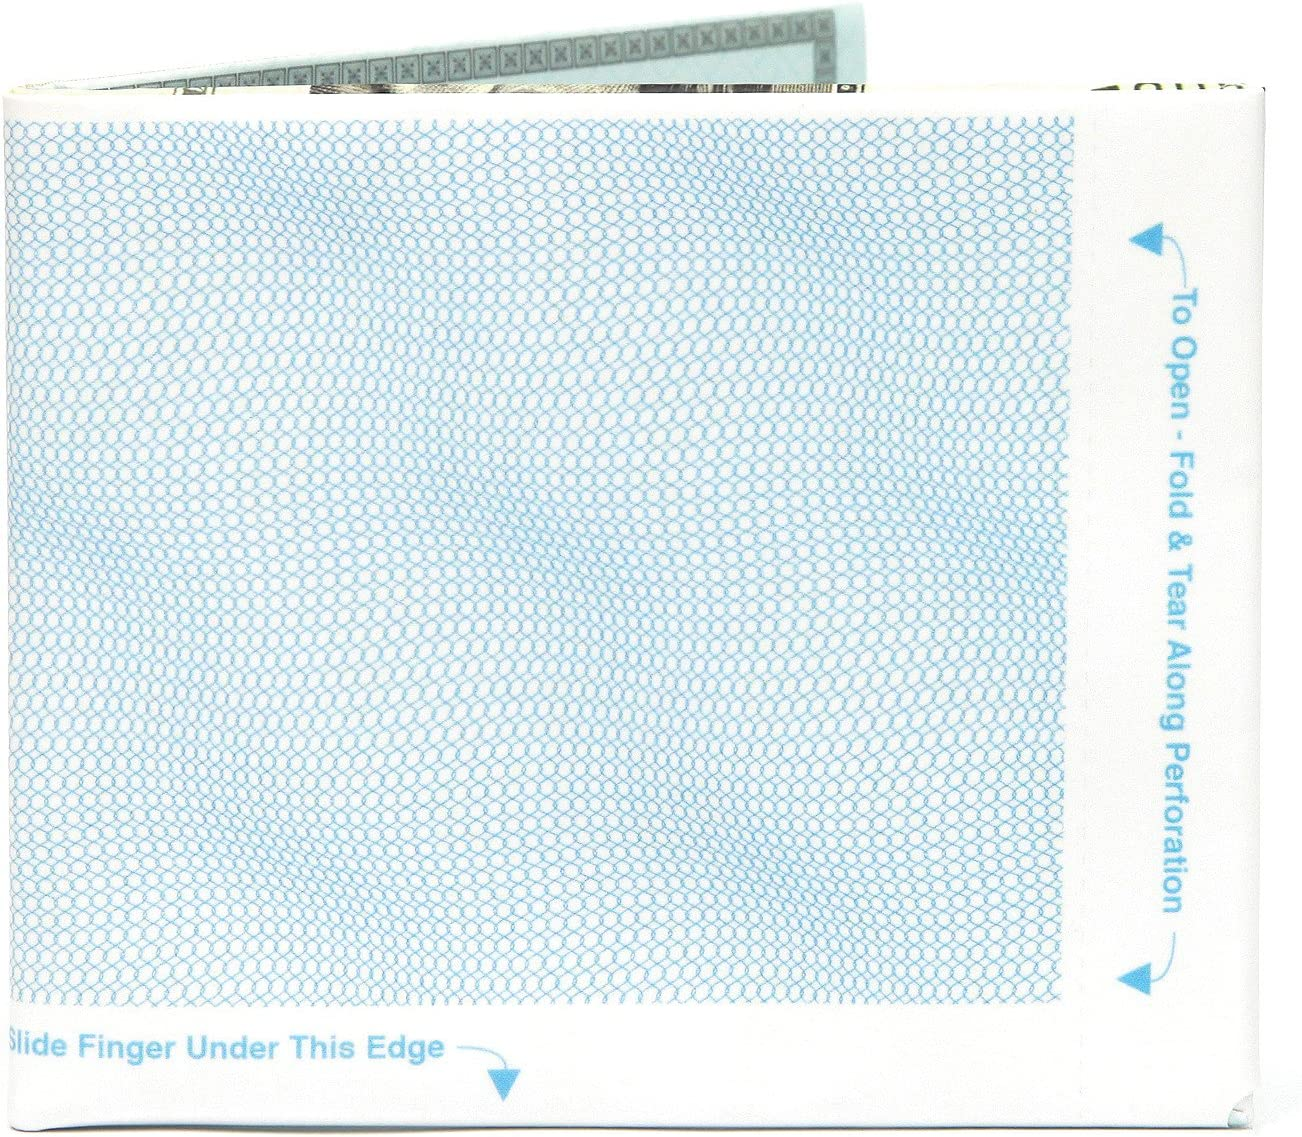 Slim Mighty Tyvek Dynomighty The Euro Bifold Papier Portefeuille Porte-monnaie The Walart Bifold Paper Wallet Svelte